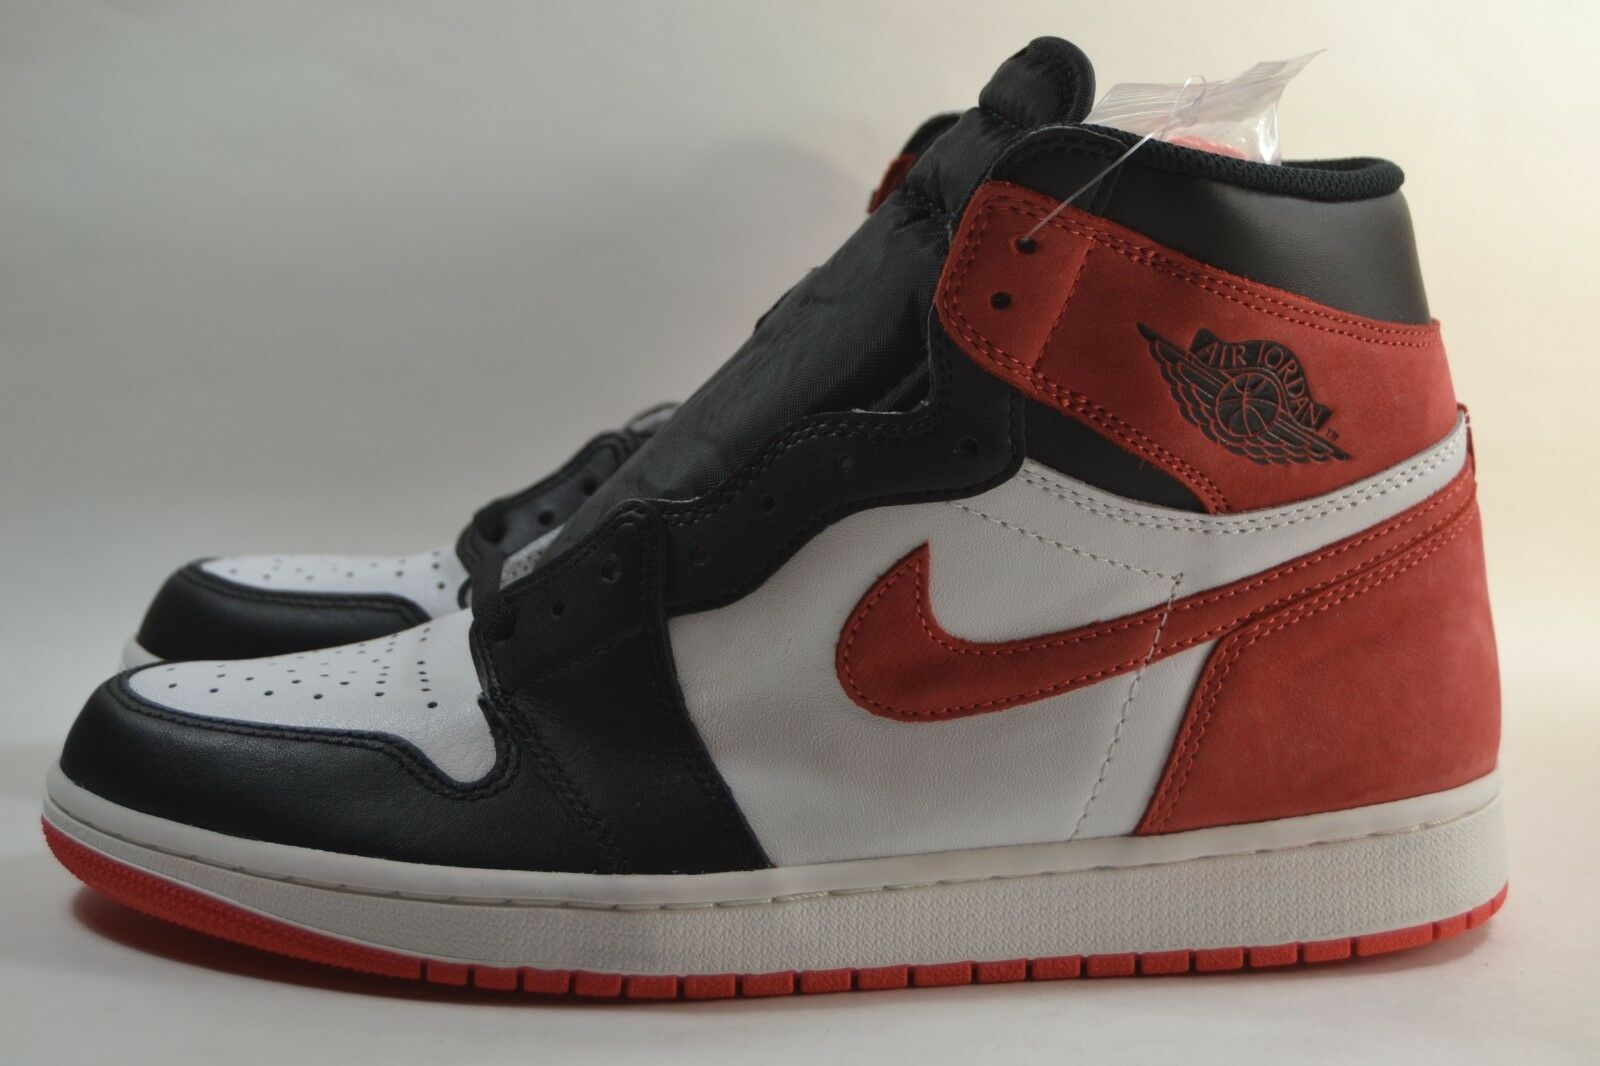 New Nike Air Jordan 1 Retro High OG Track Red 555088-112 Best in Hand